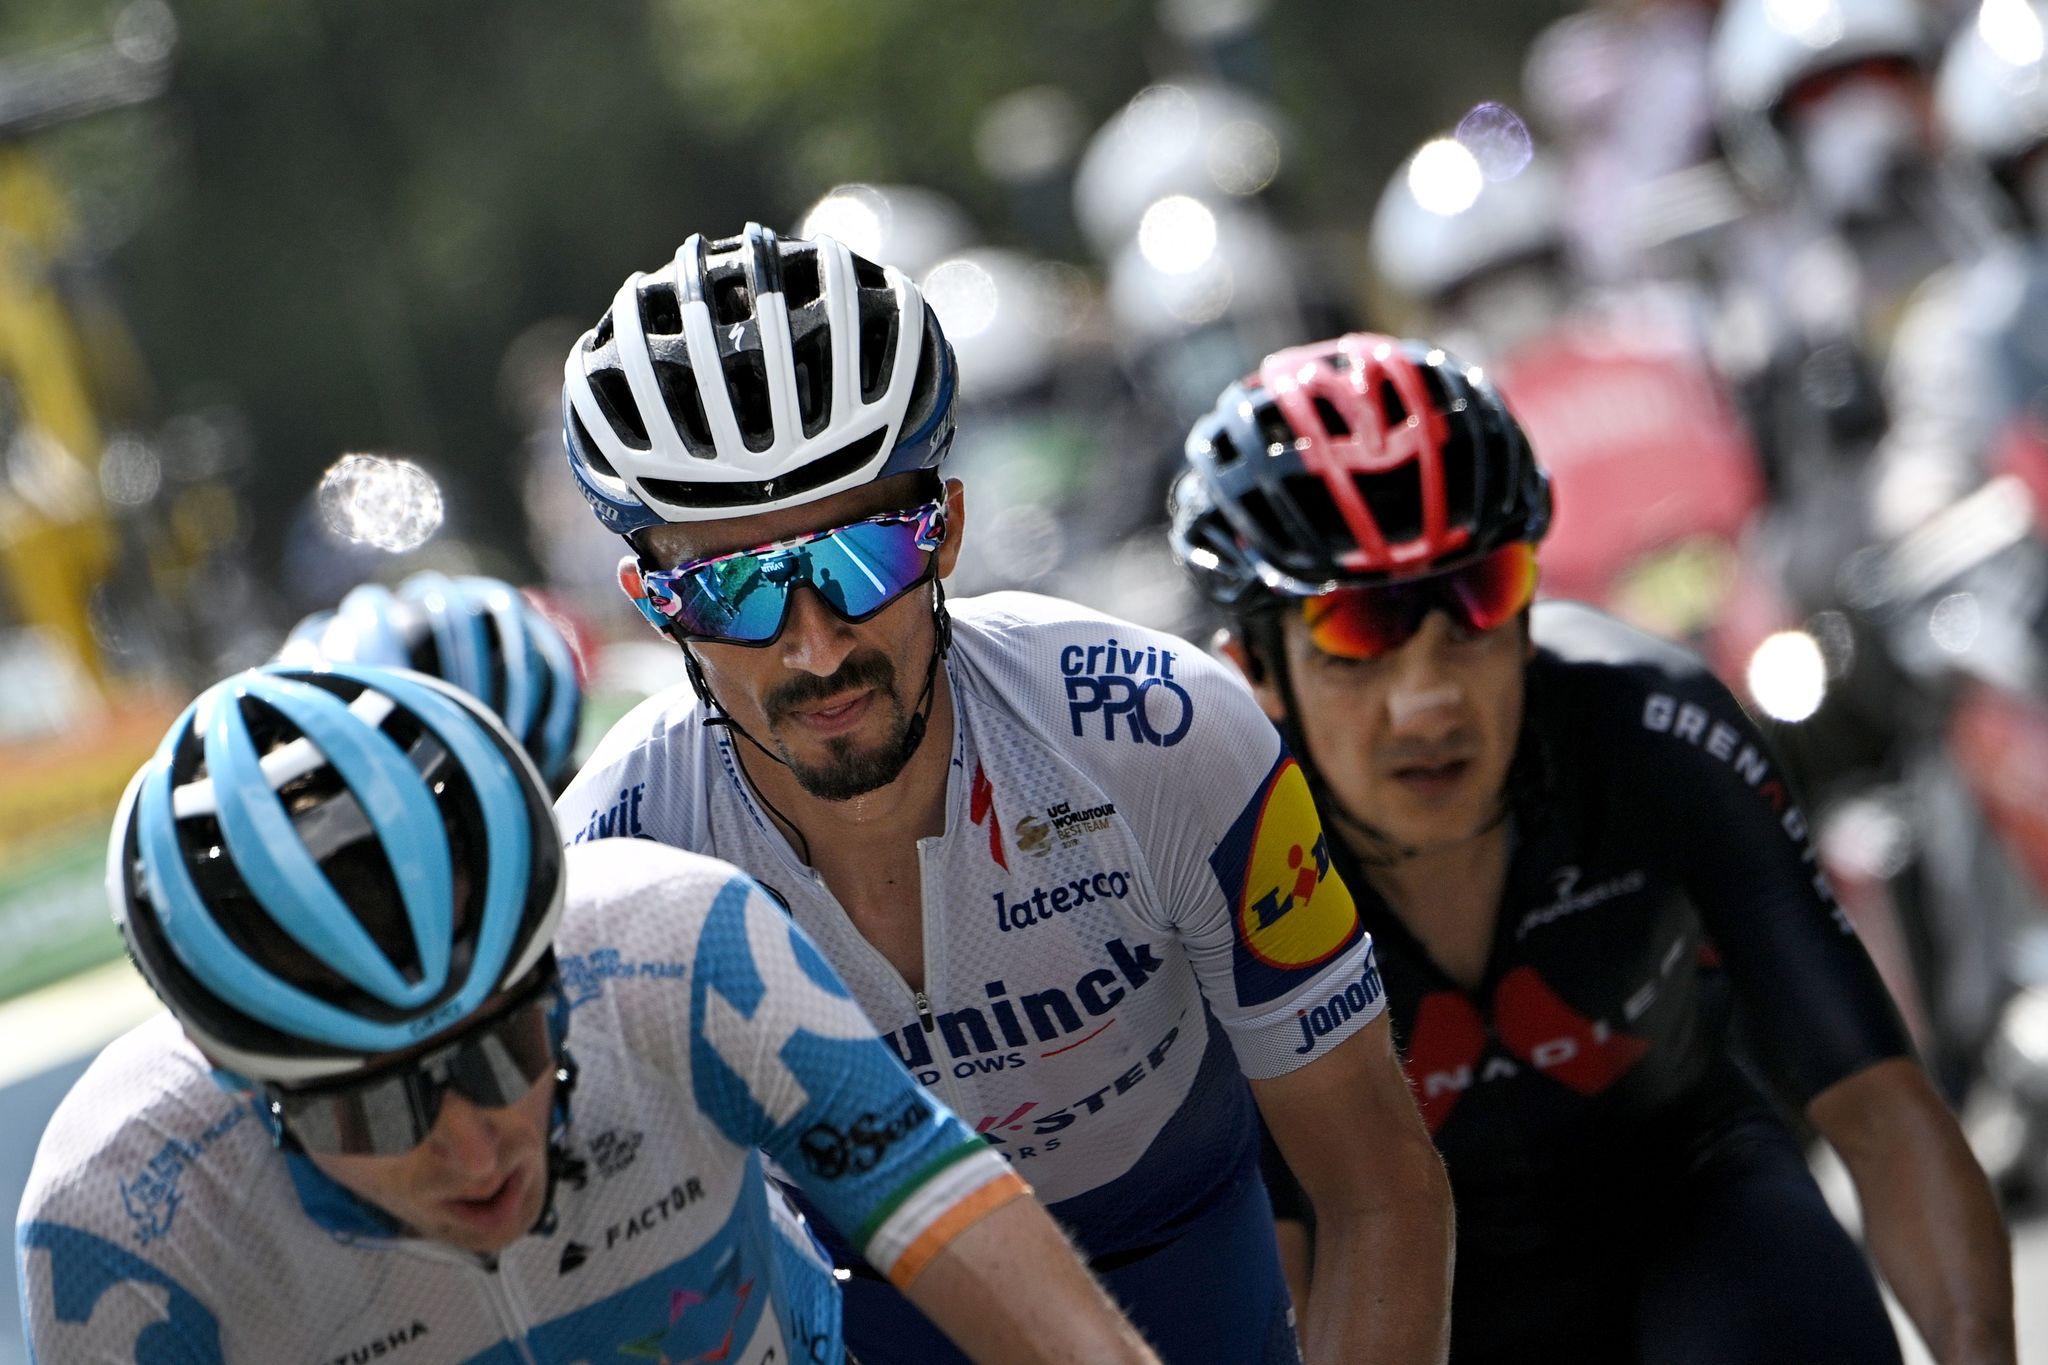 Escapees (From L) Team Israel Academy rider Ireland's Daniel Martin, Team Deceuninck rider France's Julian Alaphilippe and Team Ineos rider Ecuador's Richard Carapaz ride during the 17th stage of the 107th edition of the lt;HIT gt;Tour lt;/HIT gt; de France cycling race, 170 km between Grenoble and Meribel, on September 16, 2020. (Photo by Anne-Christine POUJOULAT / AFP)